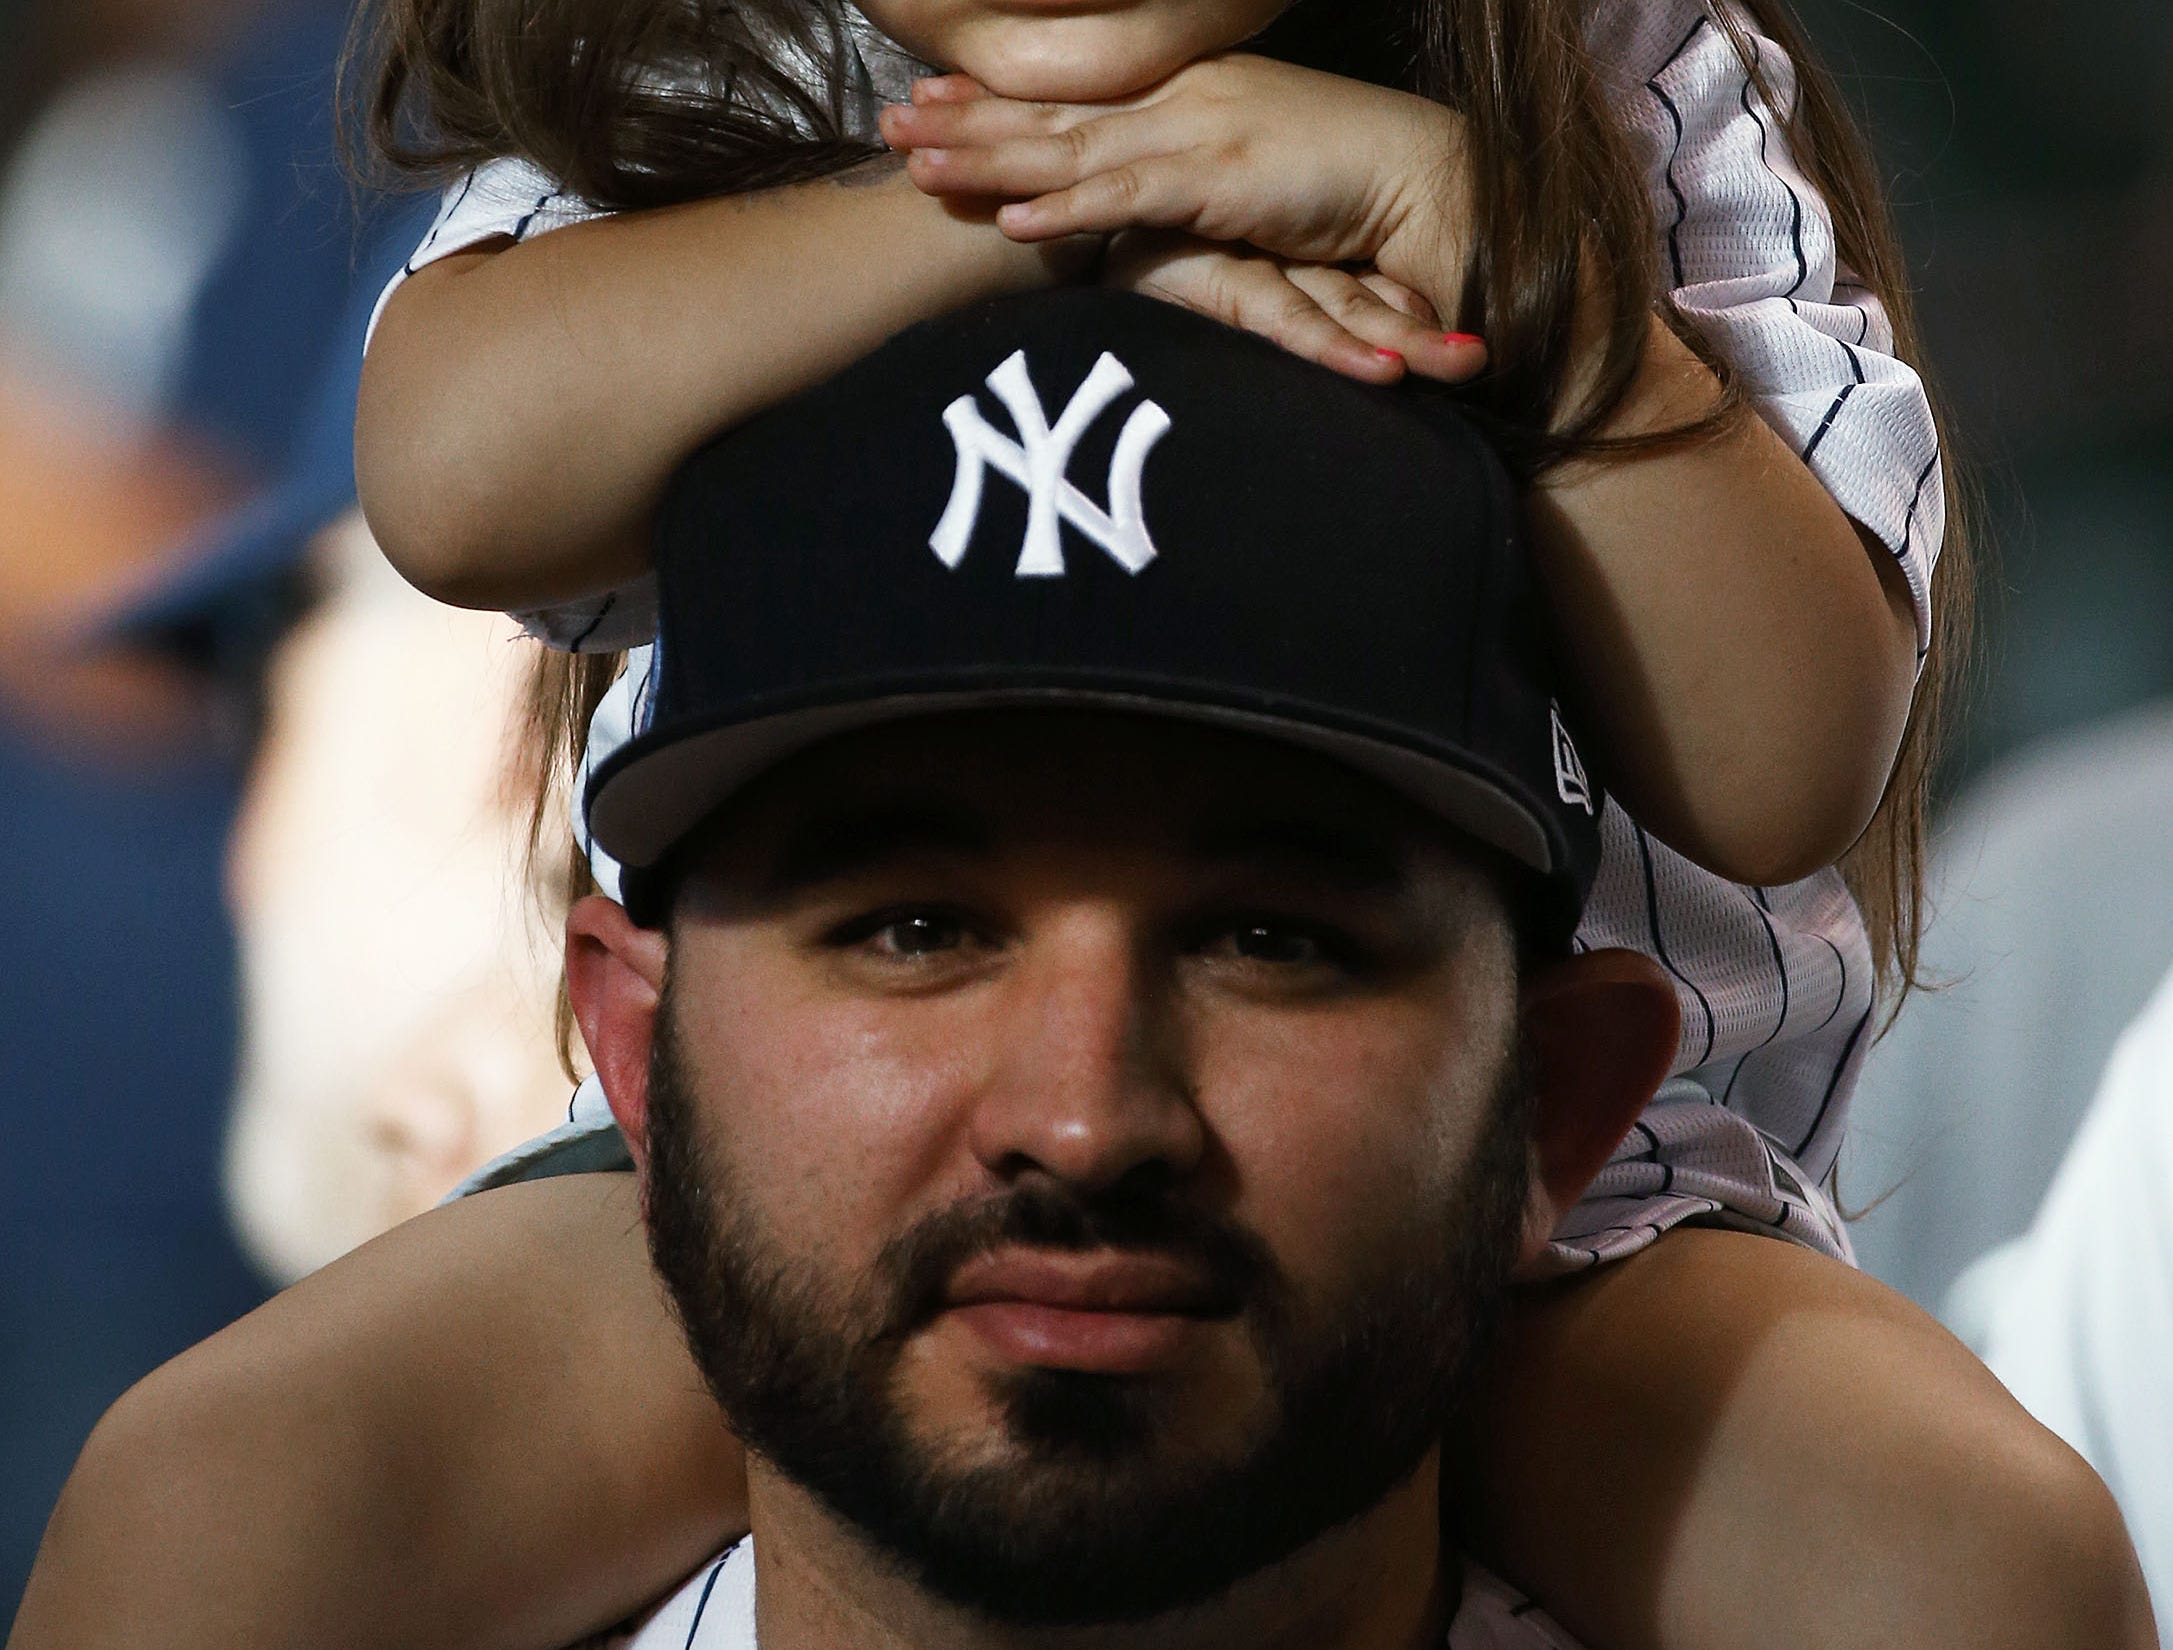 New York Yankees fan Shawn Martin from Denver, Colo., gives his daughter Ava age 4, a better view of the Yankees batting practice at the Arizona Diamondbacks game on Apr. 30, 2019 at Chase Field in Phoenix, Ariz.